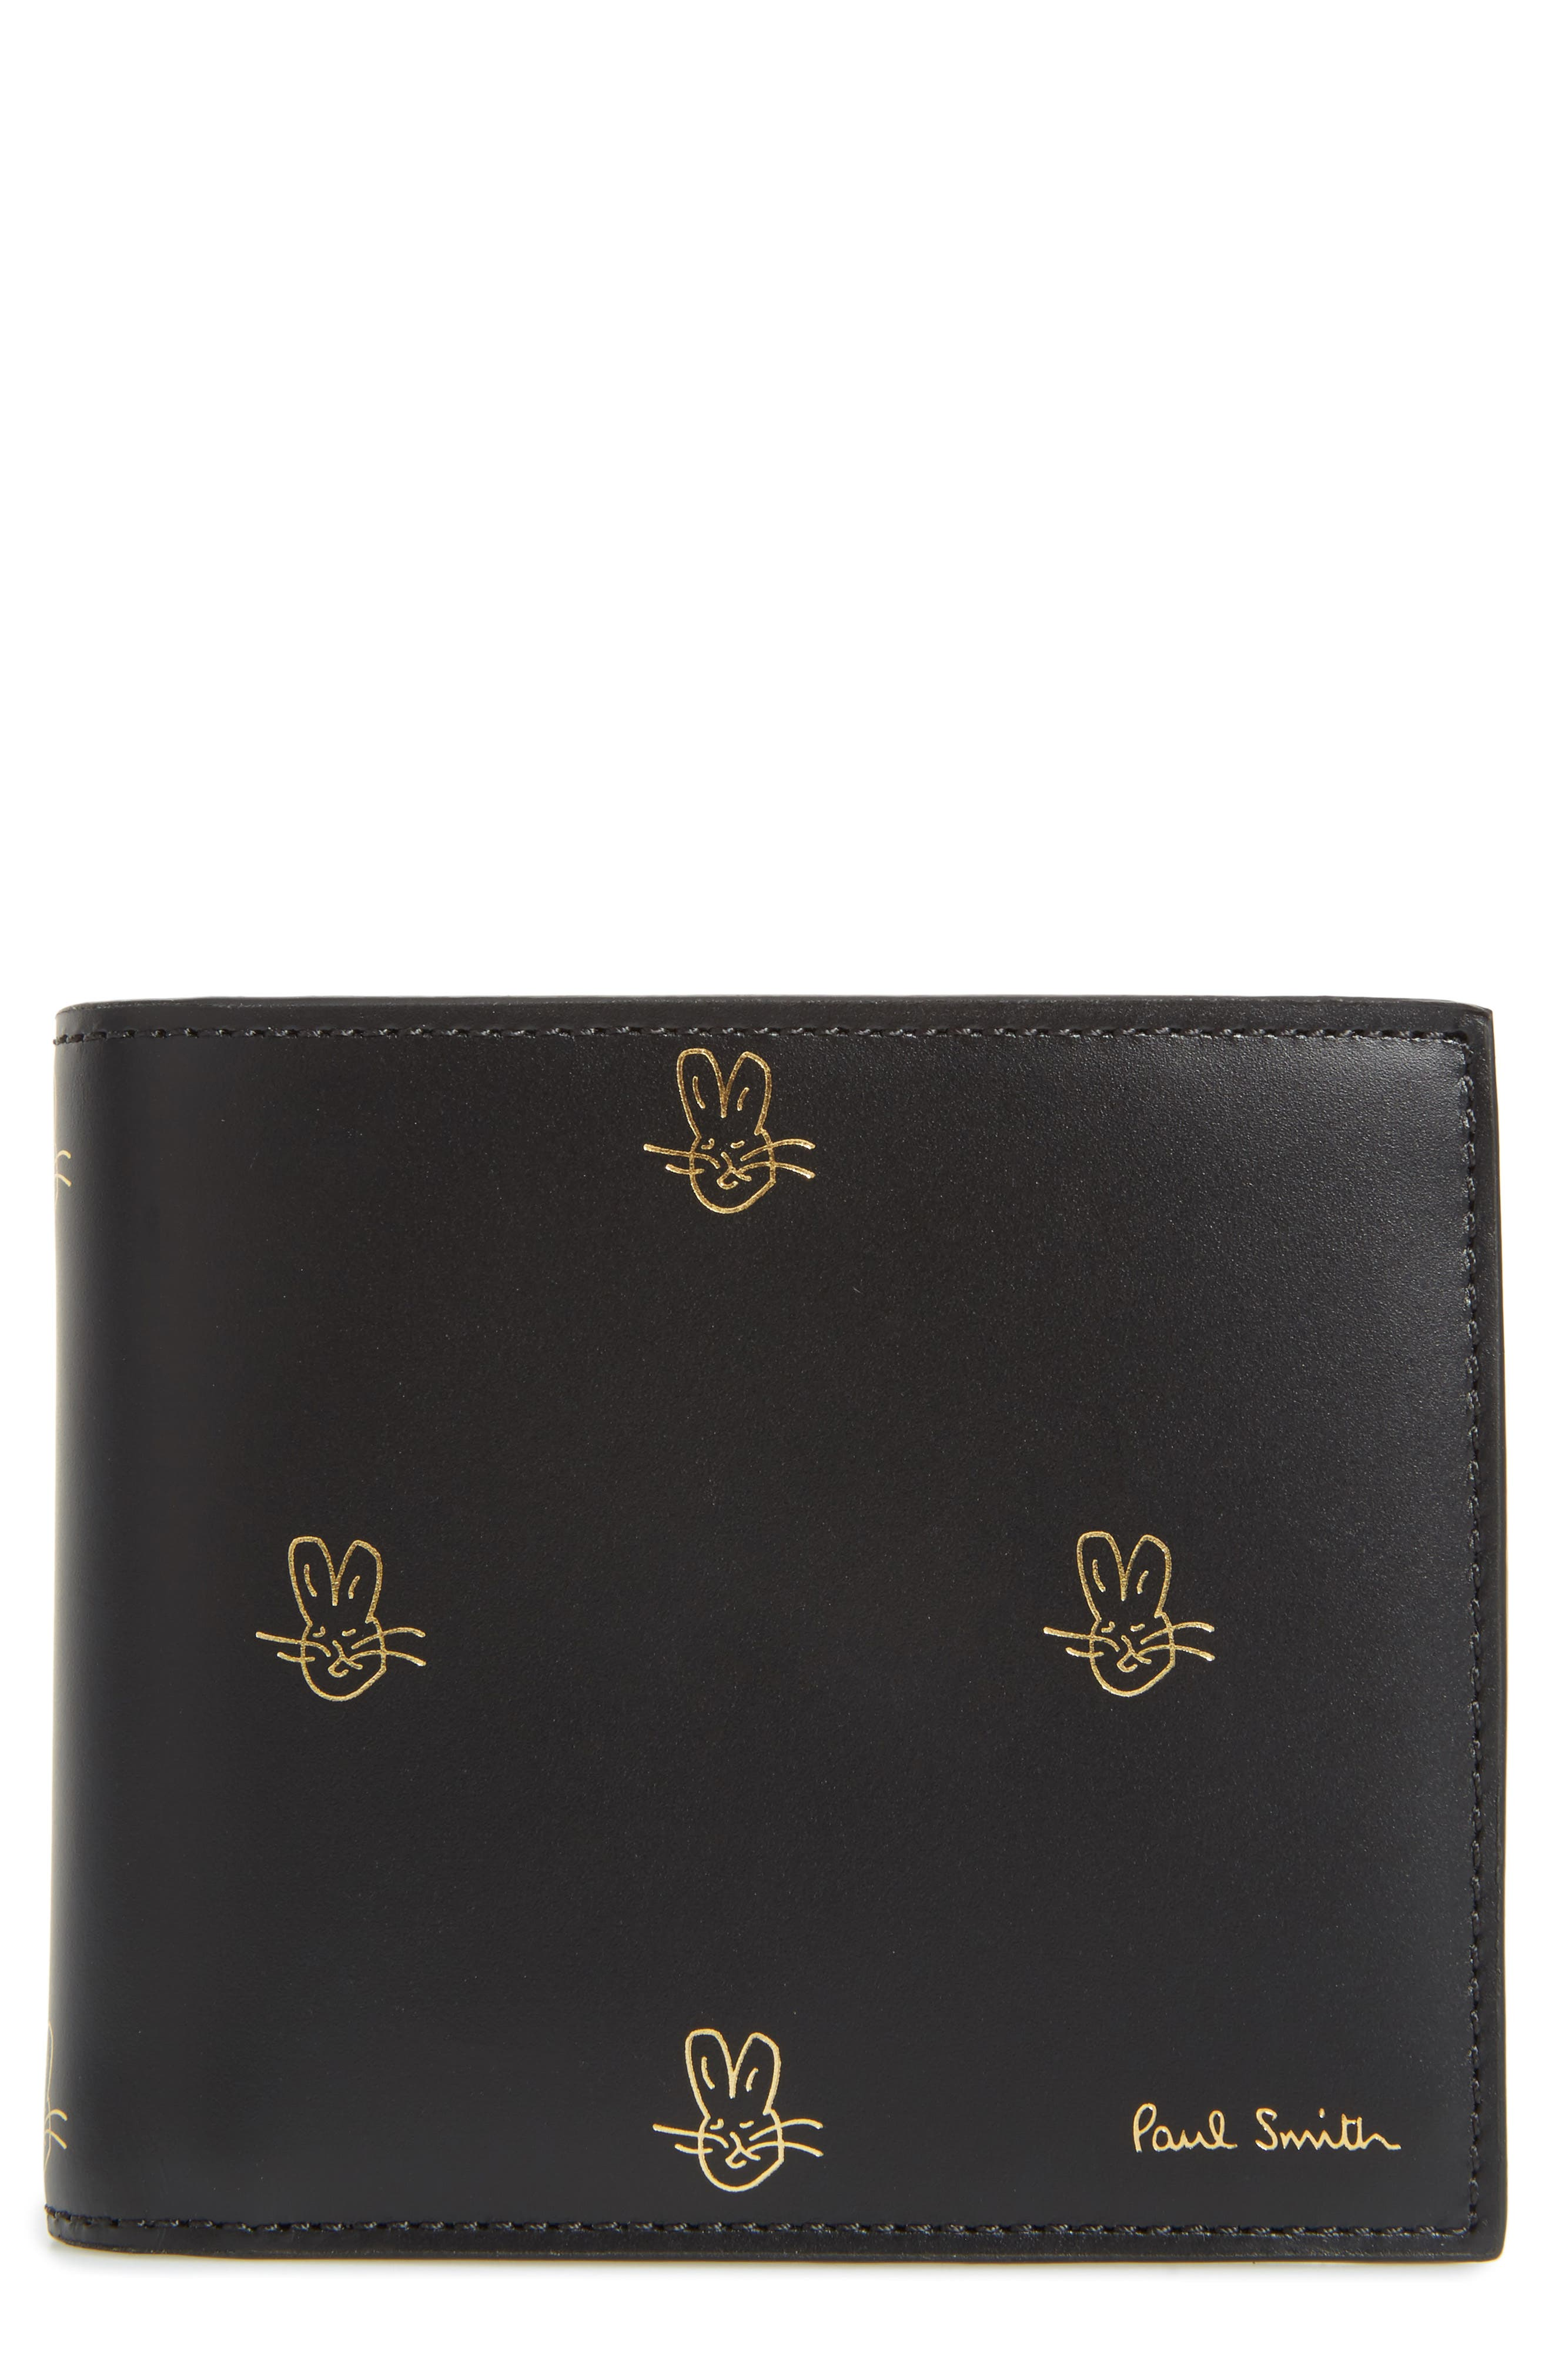 Paul Smith Doodles Leather Billfold Wallet